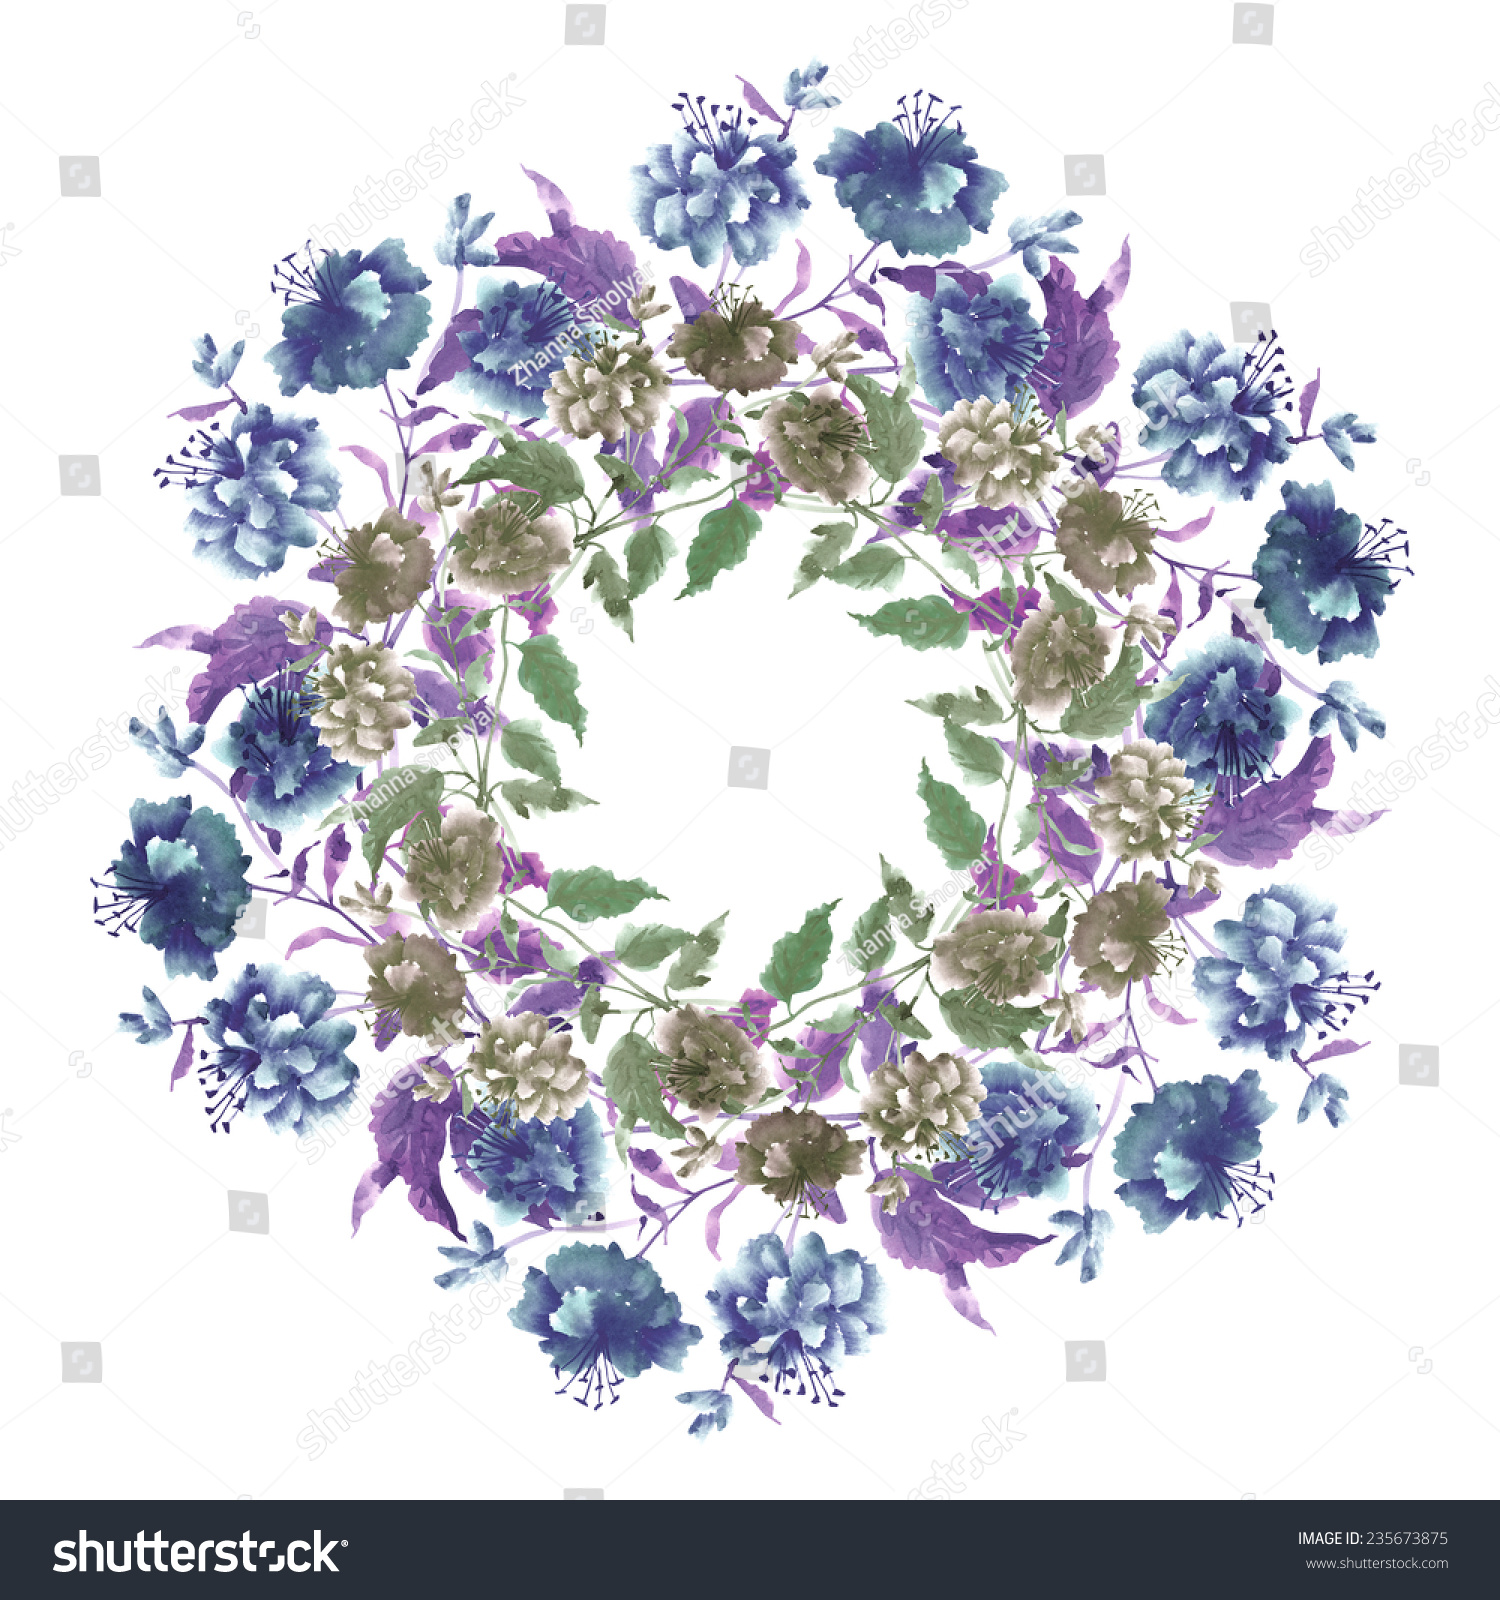 Watercolor beautiful blue flowers wreath hand painted illustration id 235673875 izmirmasajfo